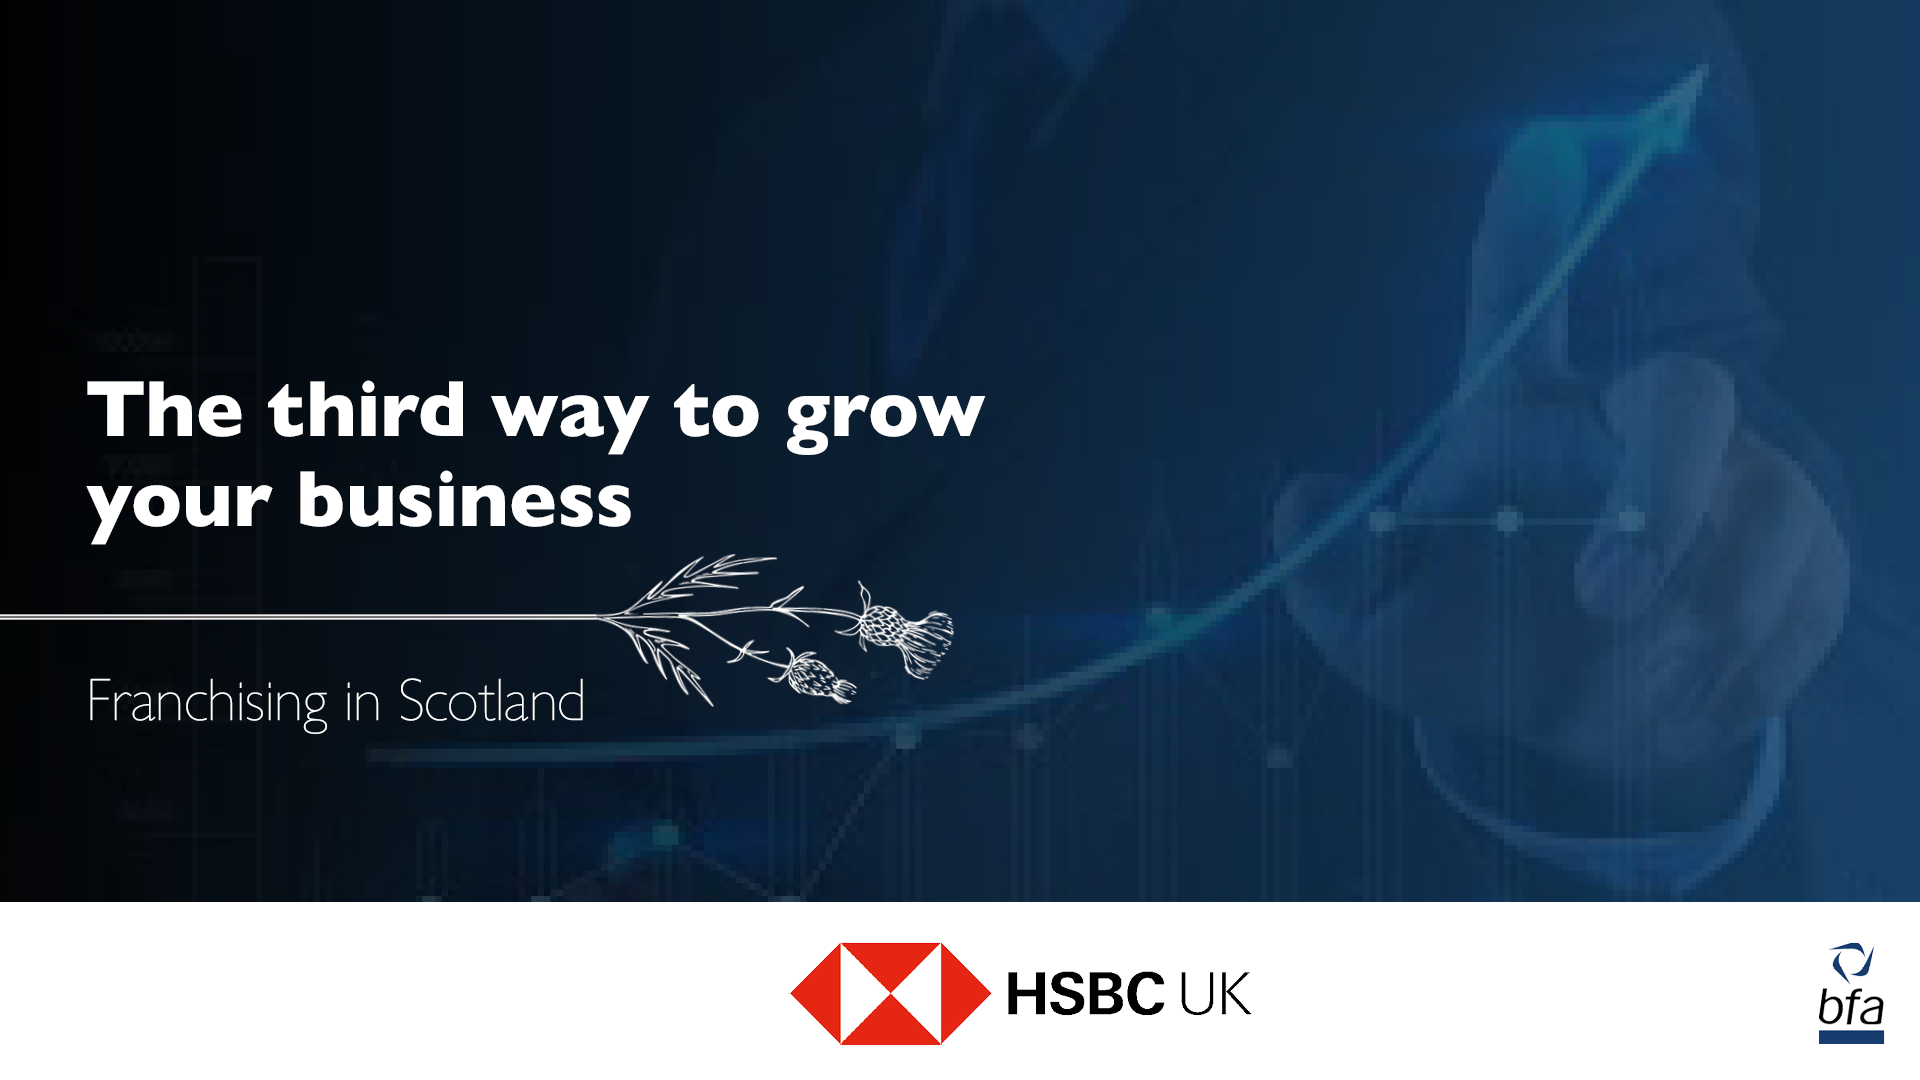 The third way to grow your business